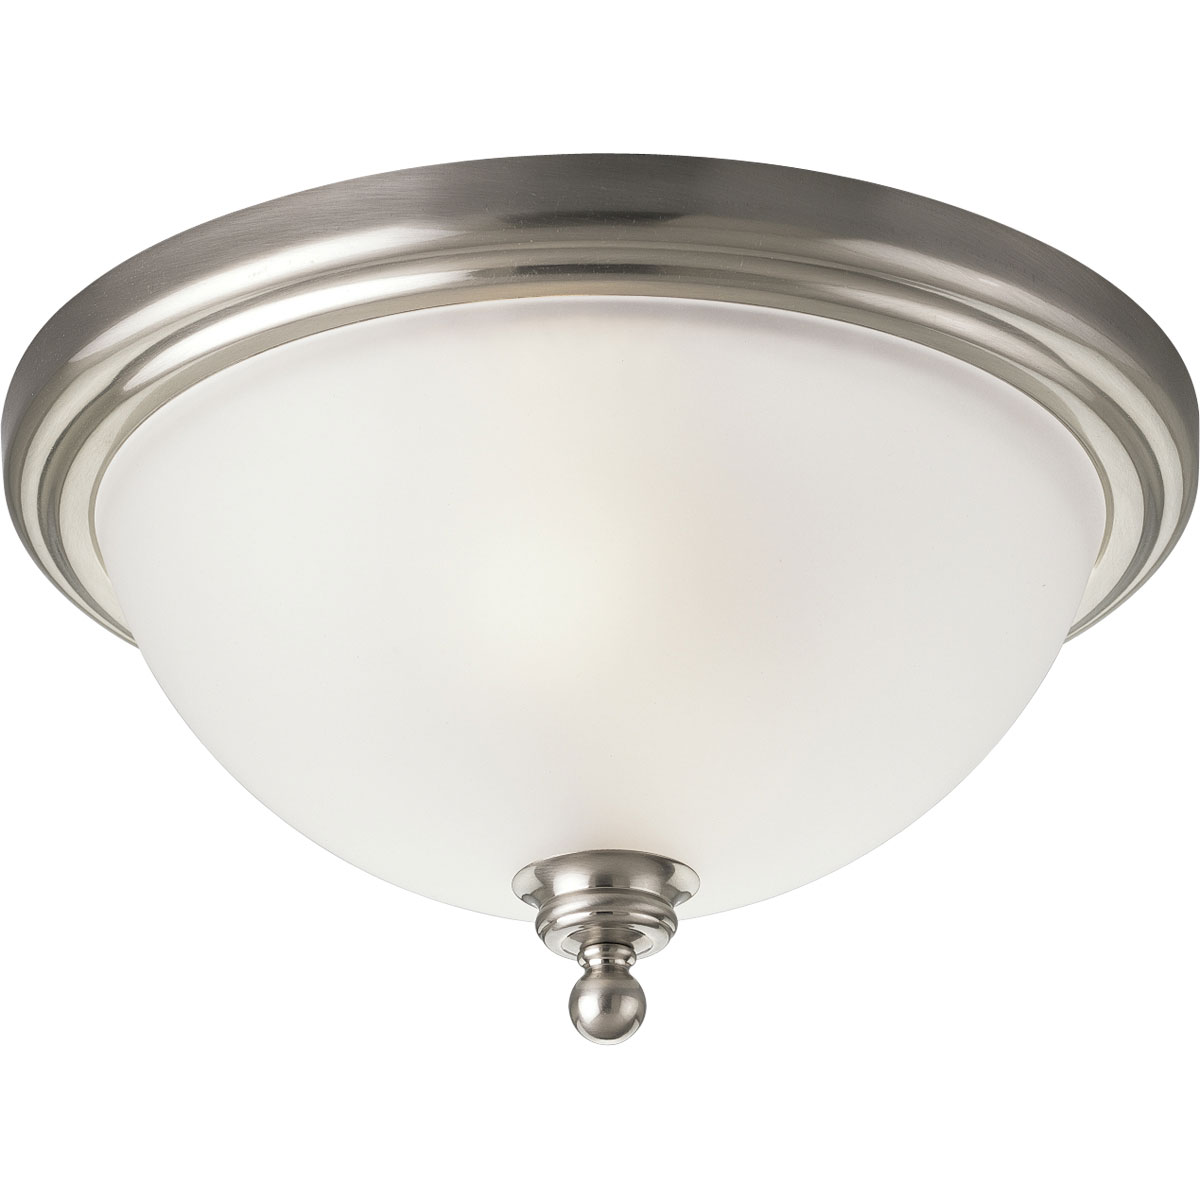 Close to ceiling track lights : Progress lighting p madison inch flush mount